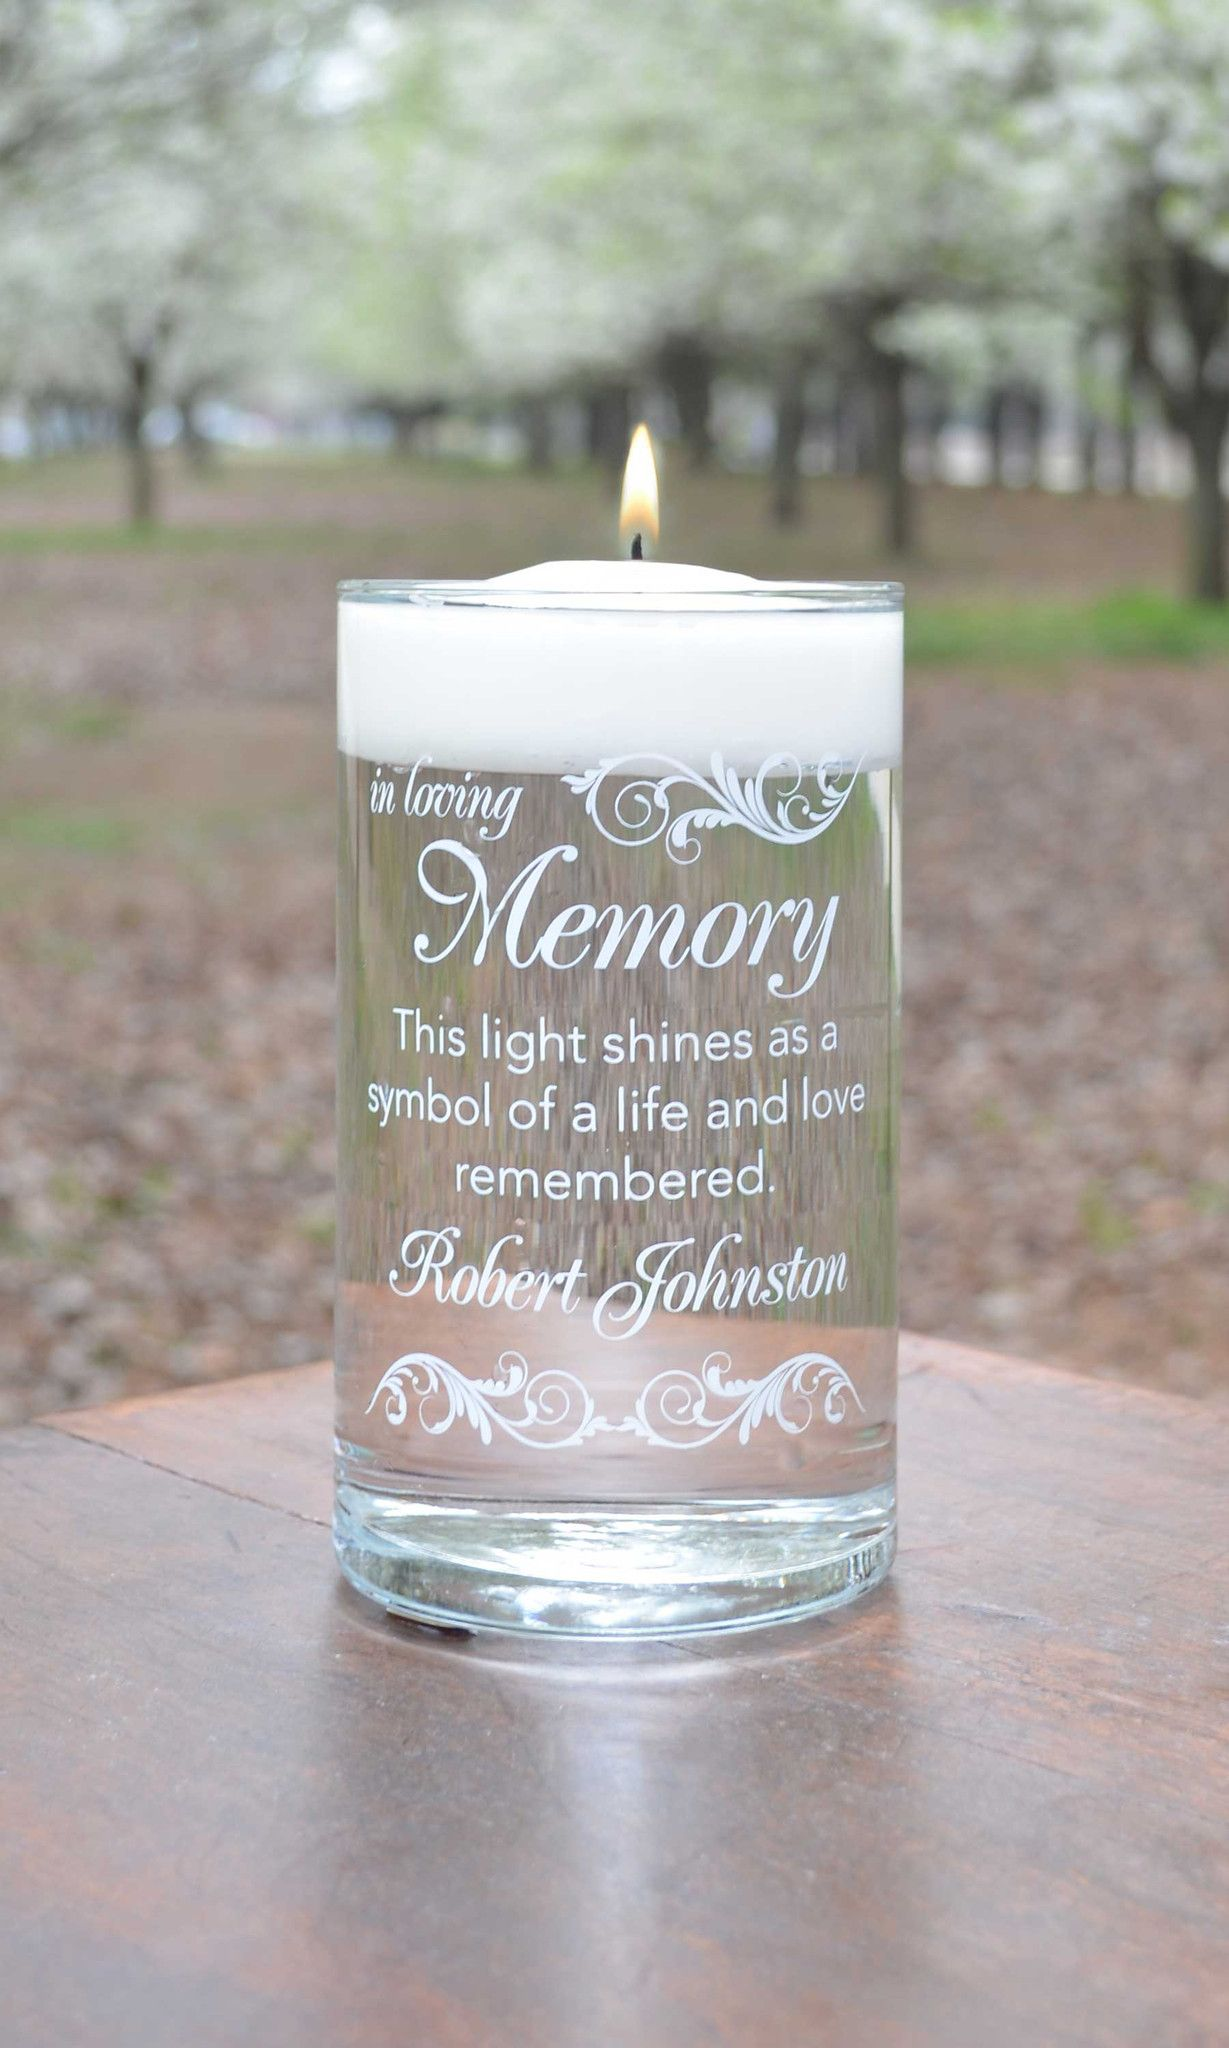 Memorial Candle - Here Comes the Bride White - Personalized Candle Holders  - Wedding Candles - 1 | Memorial candle, Candles, Here comes the bride